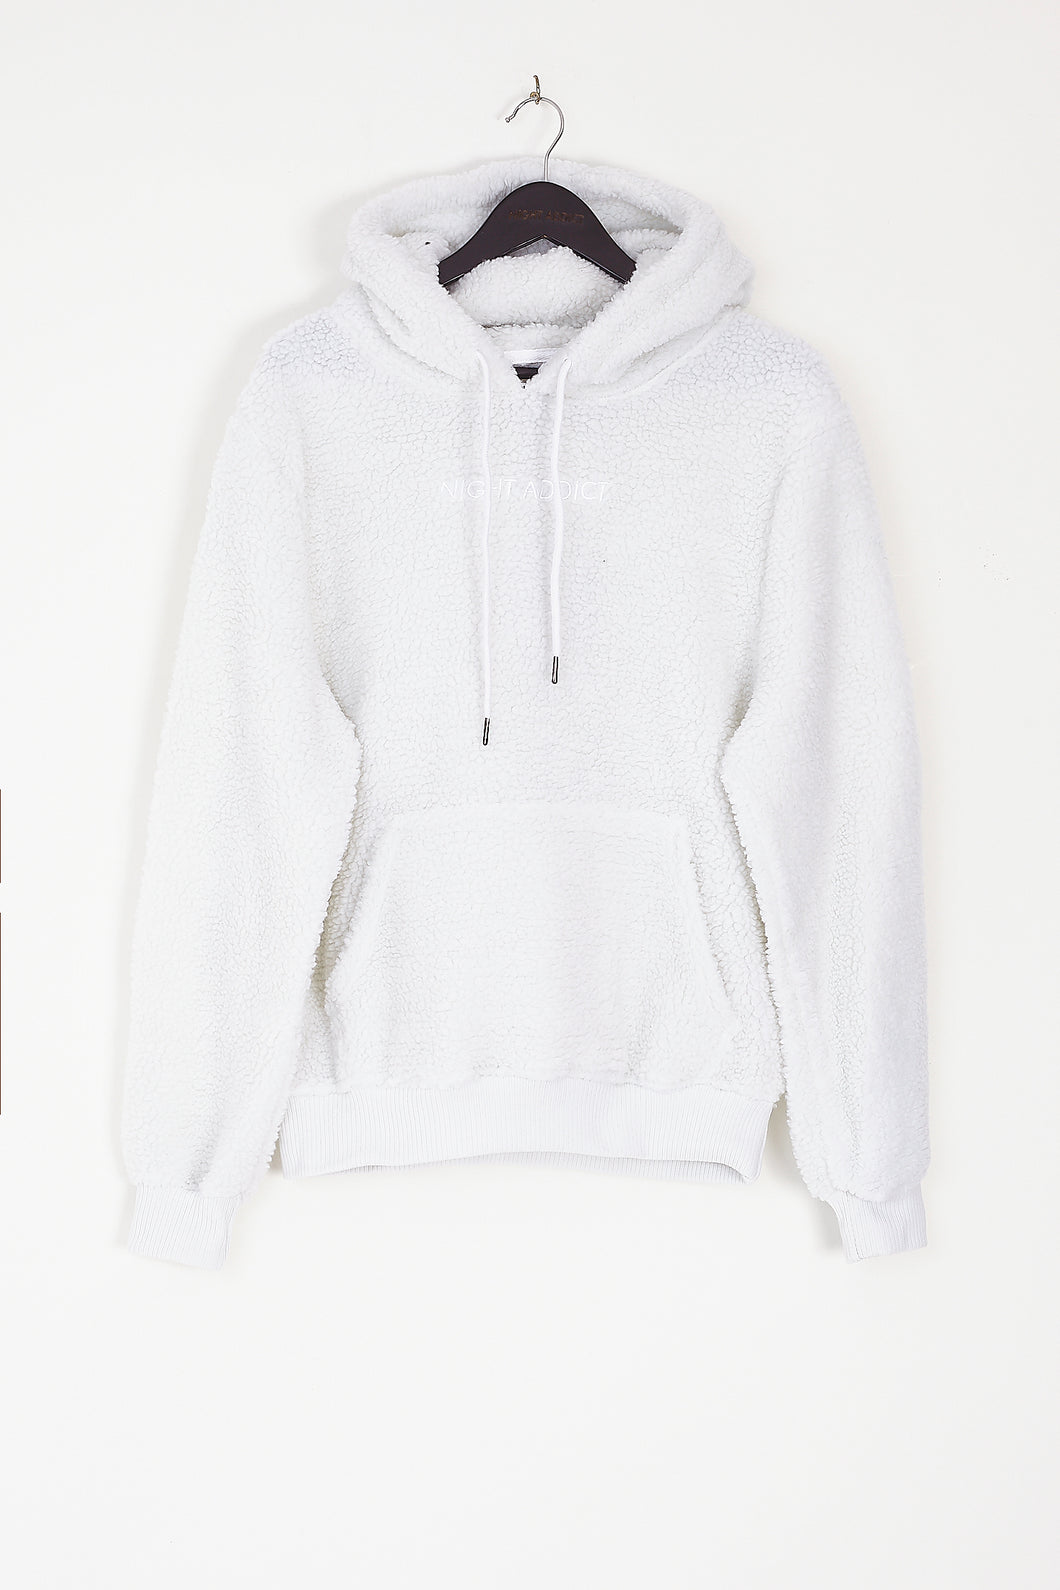 NIGHT ADDICT SHERPA BORG HOODIE - OFF WHITE